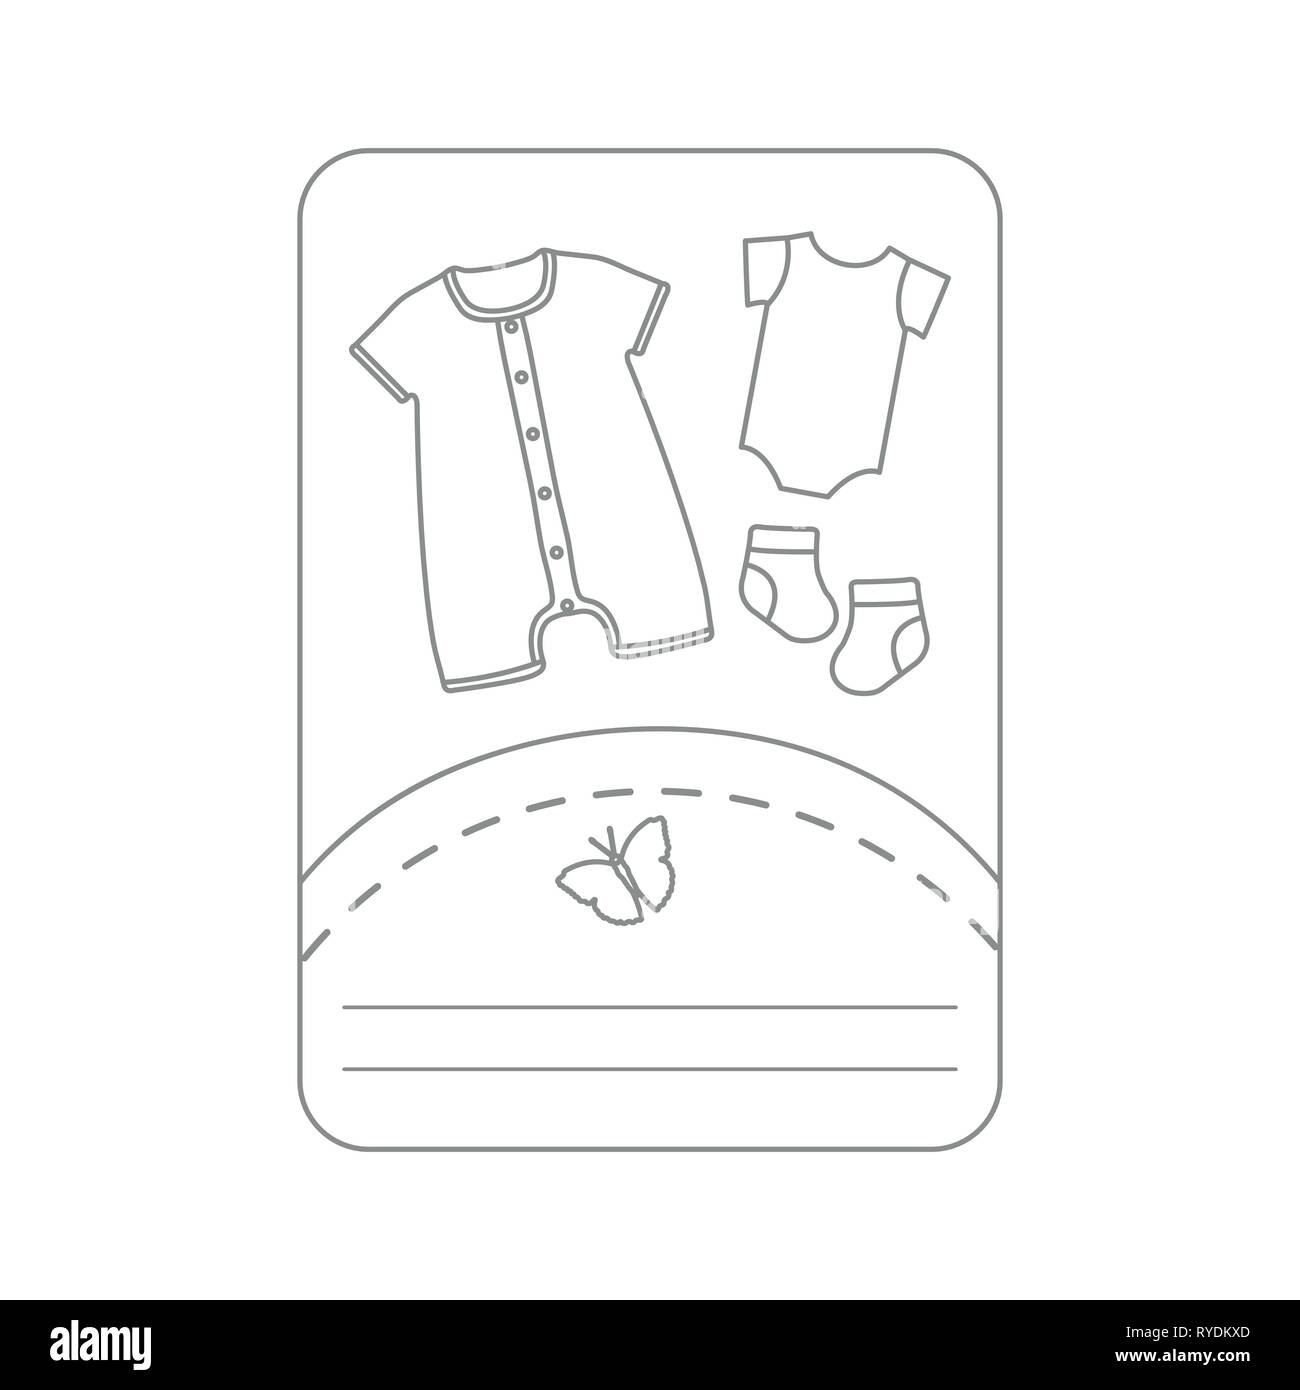 Vector illustration with baby clothes. Slip, socks, bodysuit. Things necessary for newborns. - Stock Image